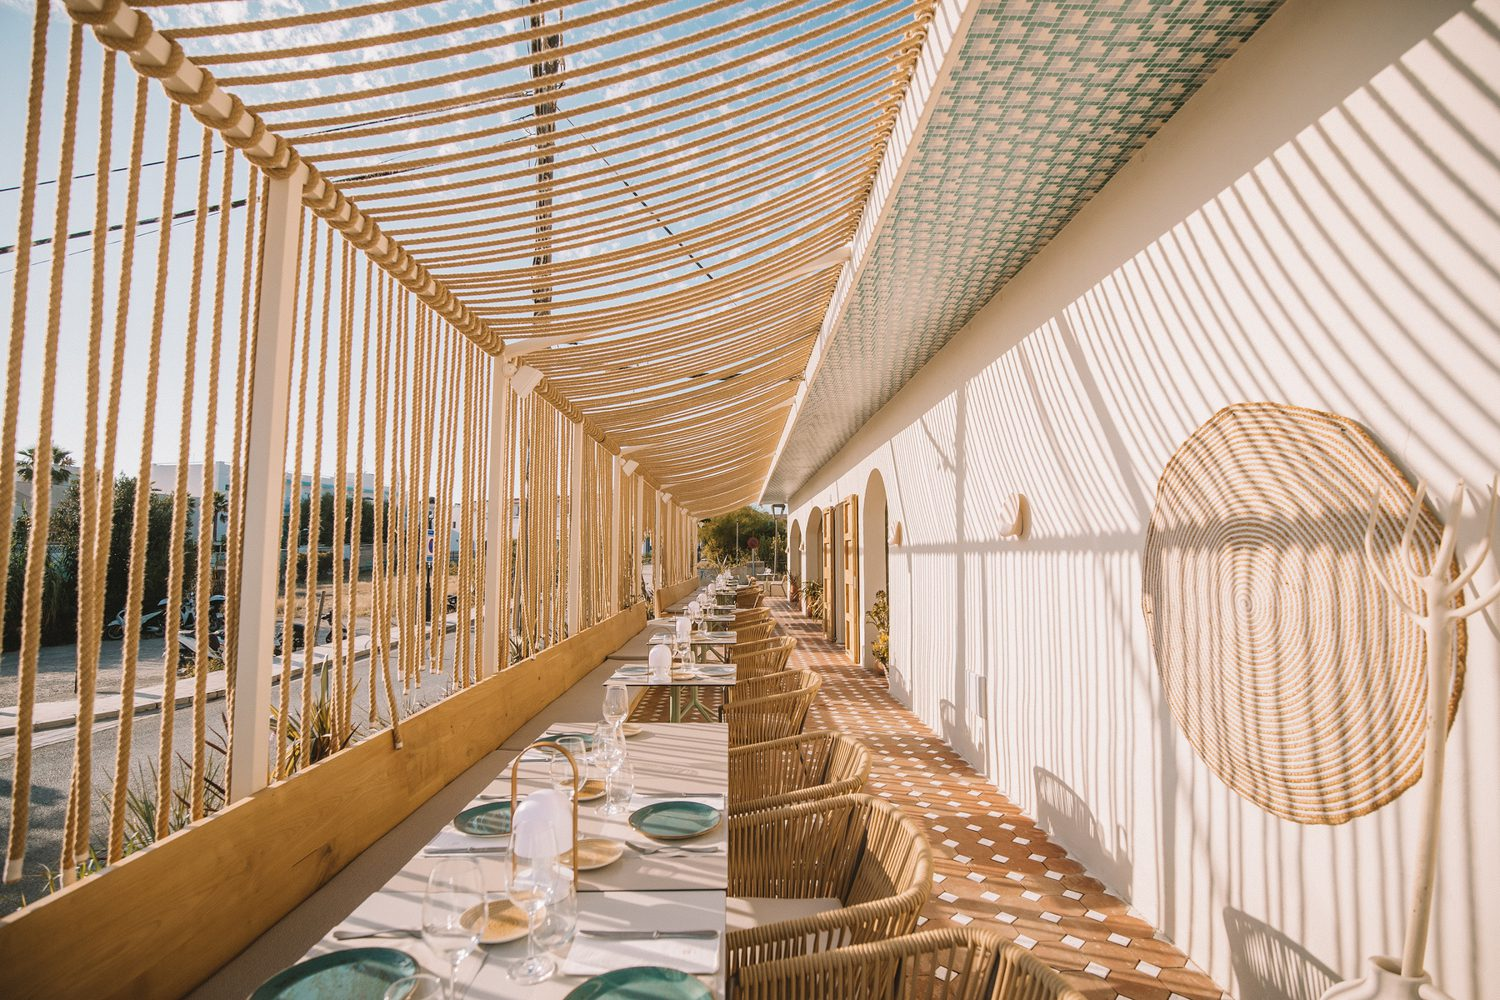 An outdoor terrace juxtaposes rope shadows with graphic patterns of tiles.